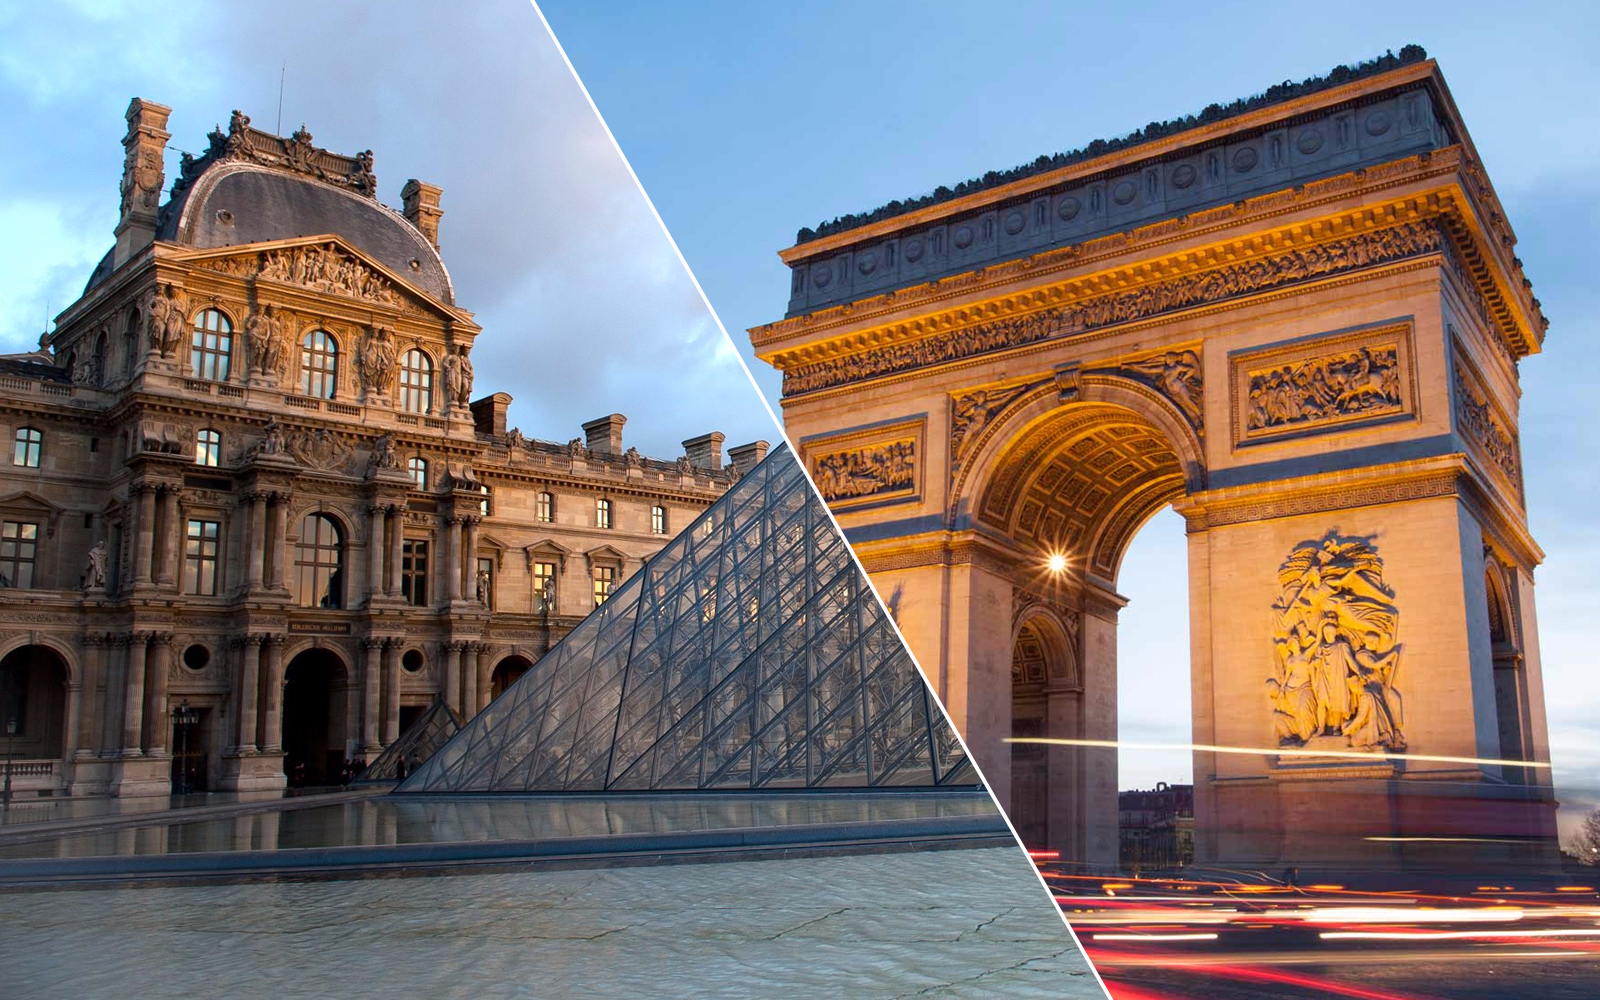 Le Louvre Billet Coupe File Louvre Museum Dedicated Entrance Skip The Line Arc De Triomphe Tickets